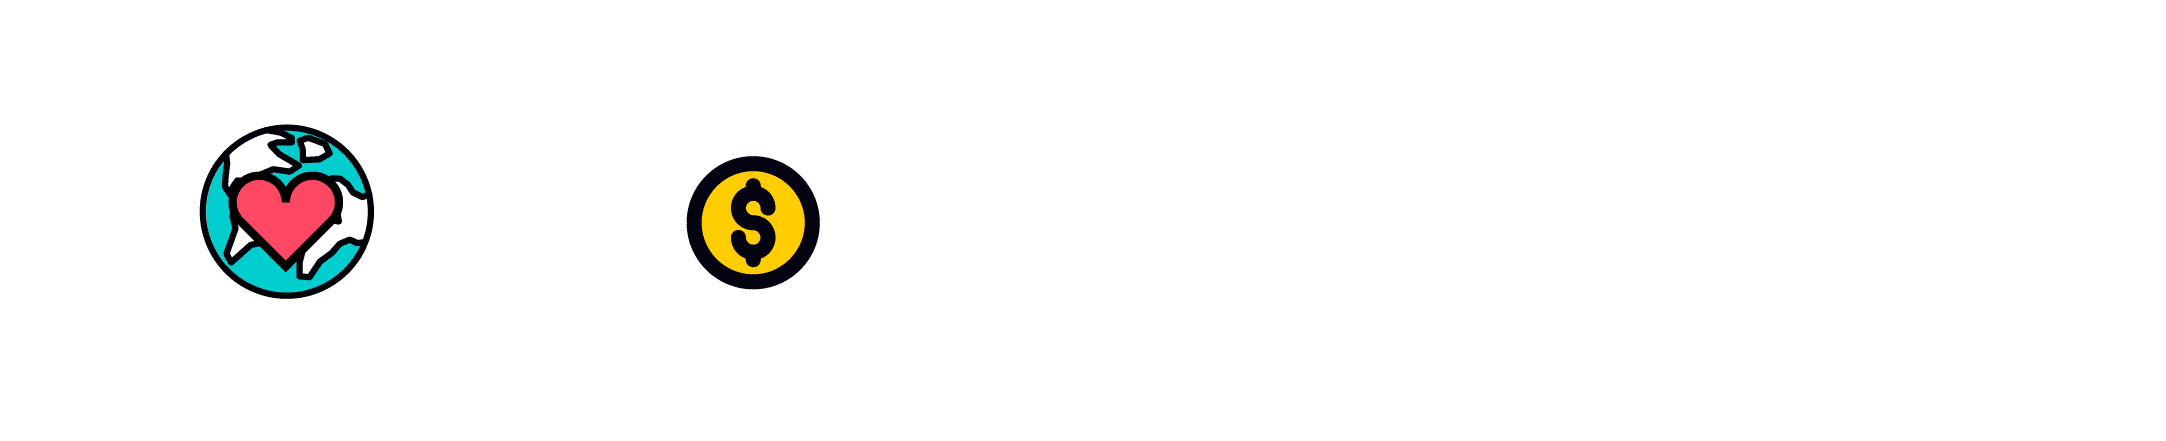 Blog to Biz Strategies Site Logo v2